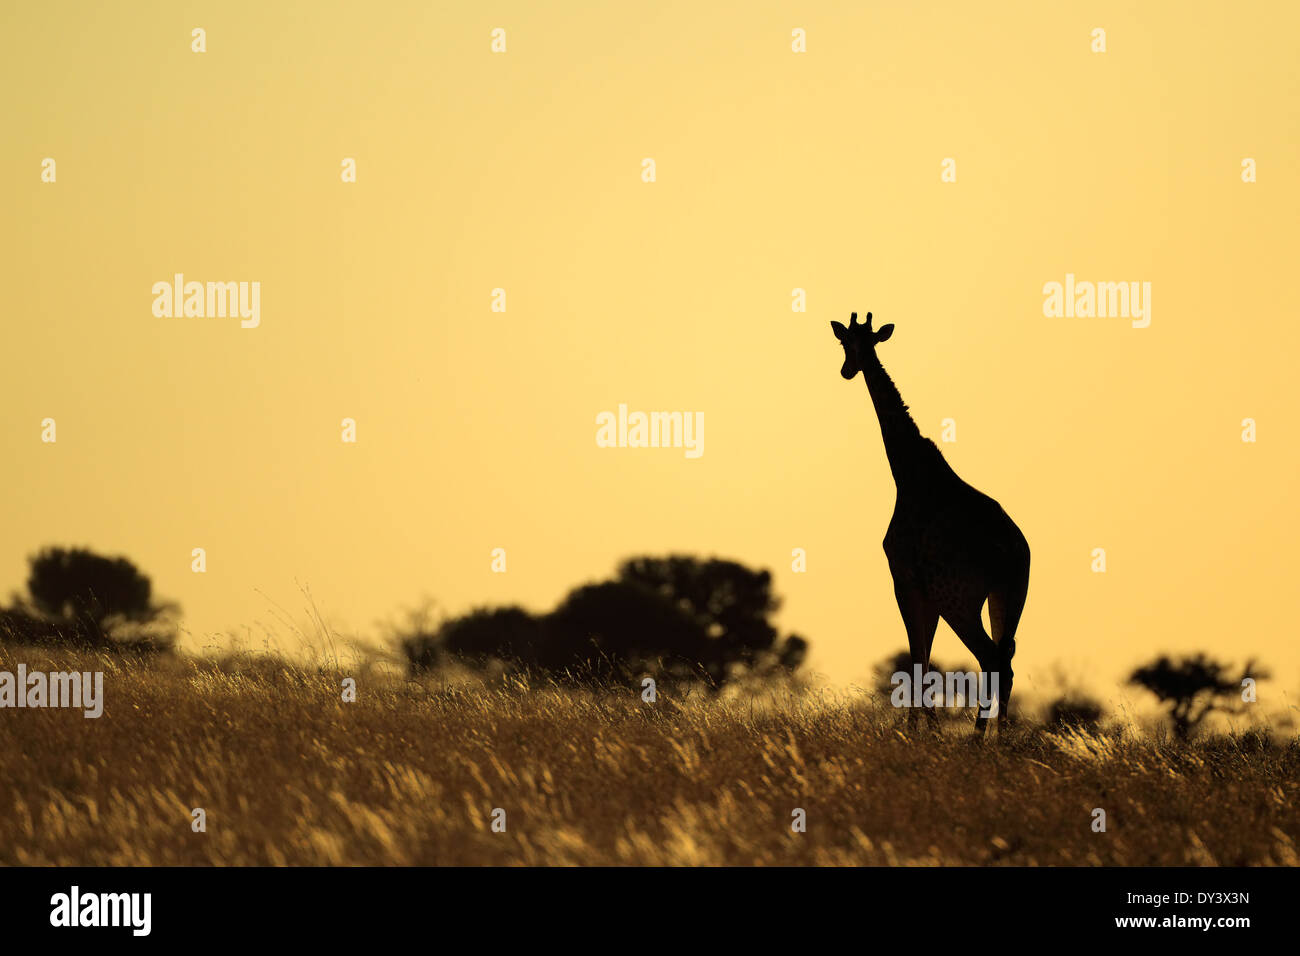 A giraffe (Giraffa camelopardalis) silhouetted against a sunset, South Africa - Stock Image